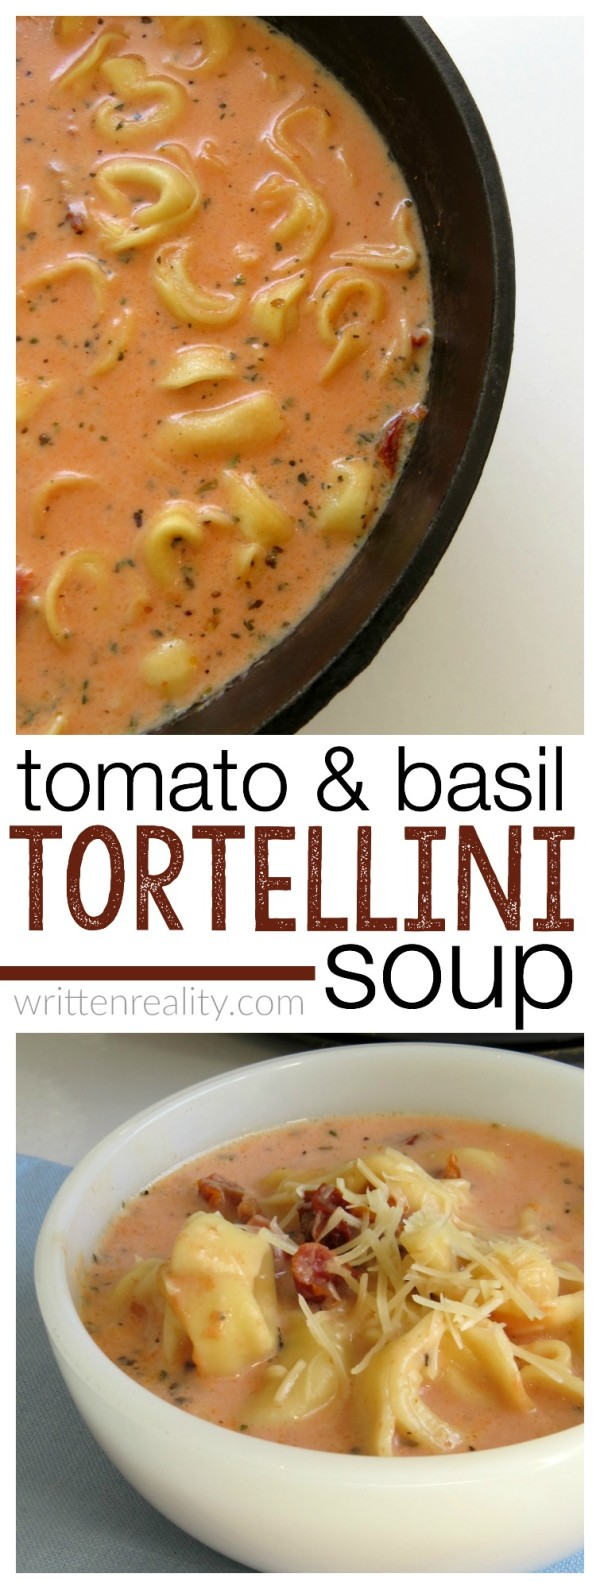 This recipe for Tomato Tortellini Soup is easy and delicious!